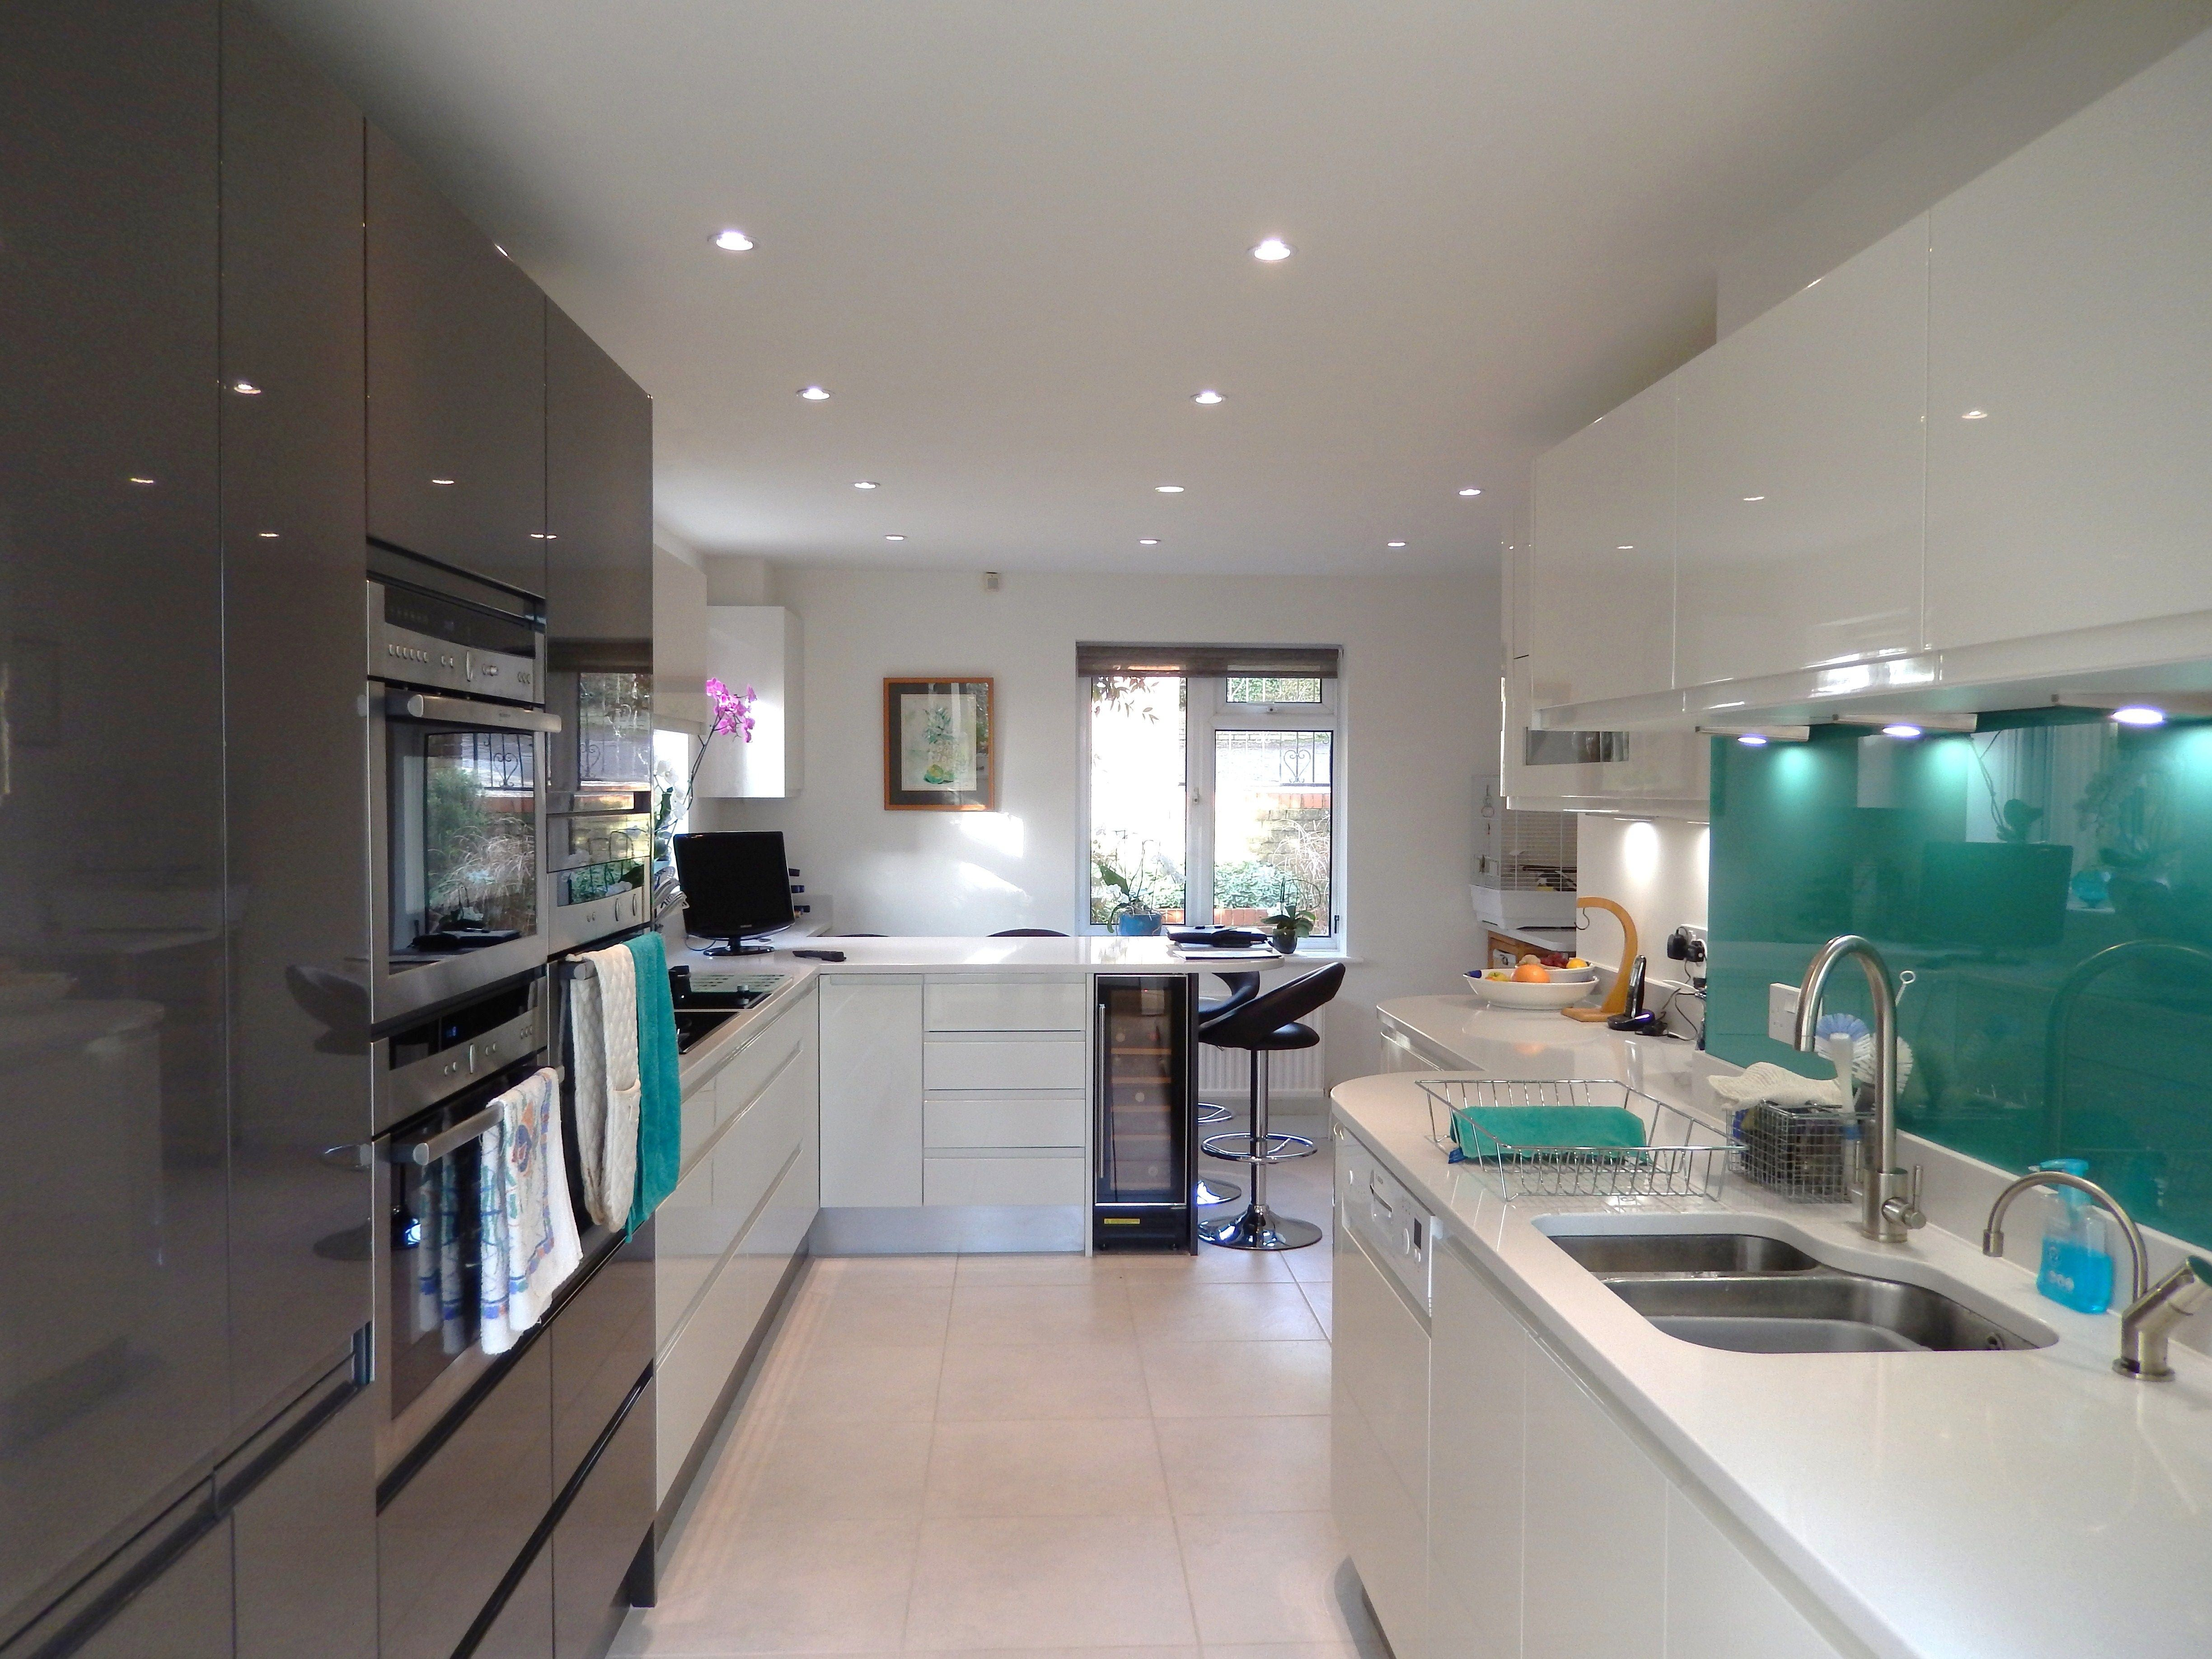 Contemporary White Handleless Kitchen We Love The Use Of A Teal Splashback To Add A Wow Factor Winchester Kitchen G White Kitchen Kitchen Kitchen Projects